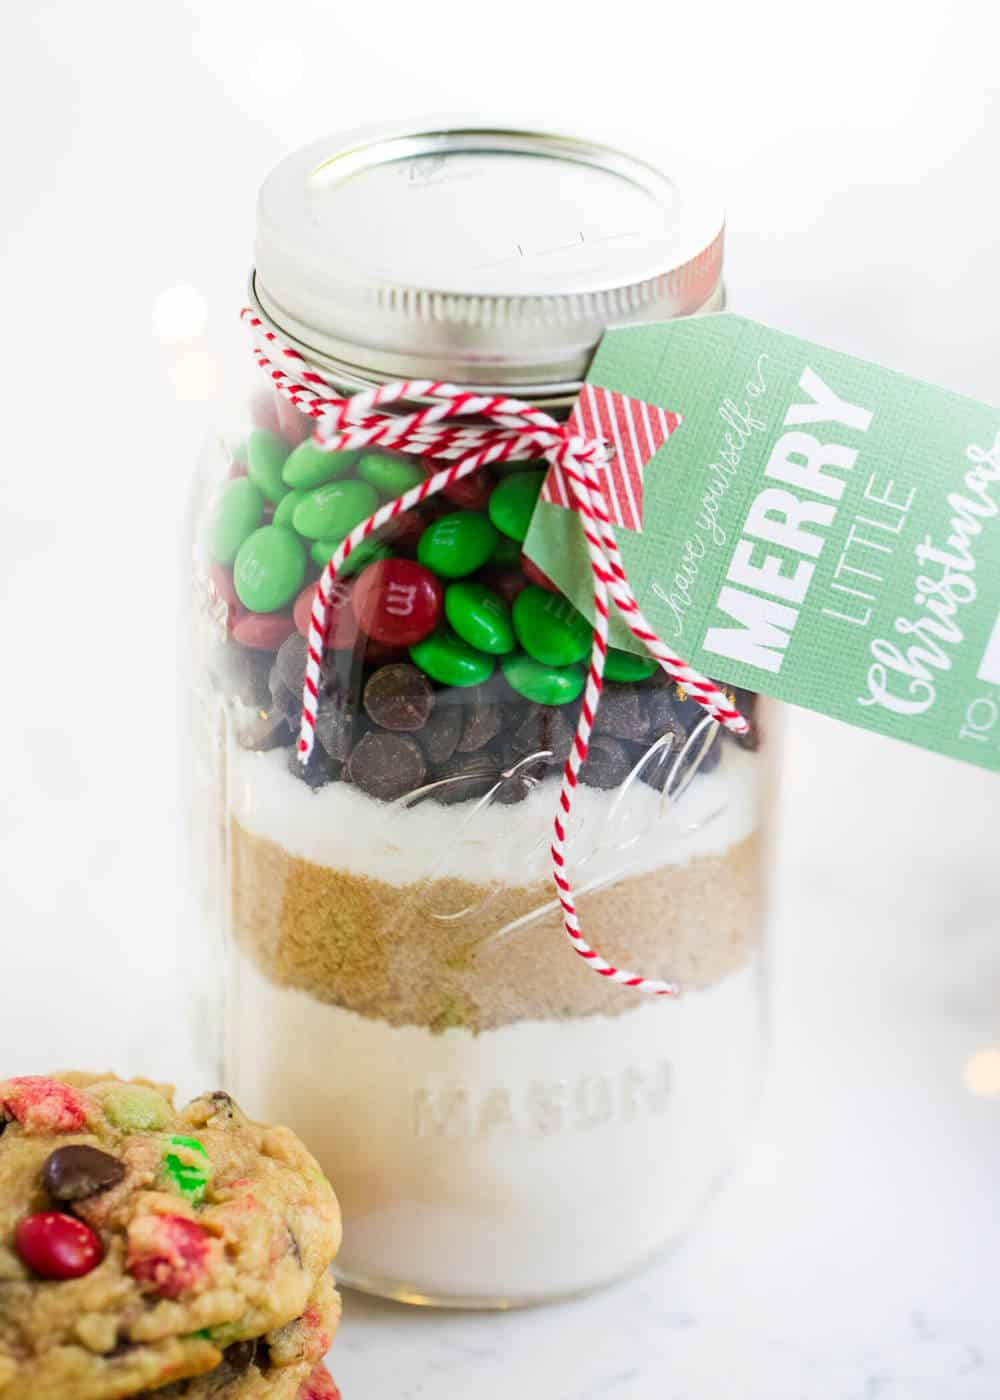 https://www.iheartnaptime.net/wp-content/uploads/2017/11/mason-jar-cookie-mix-i-heart-naptime.jpg